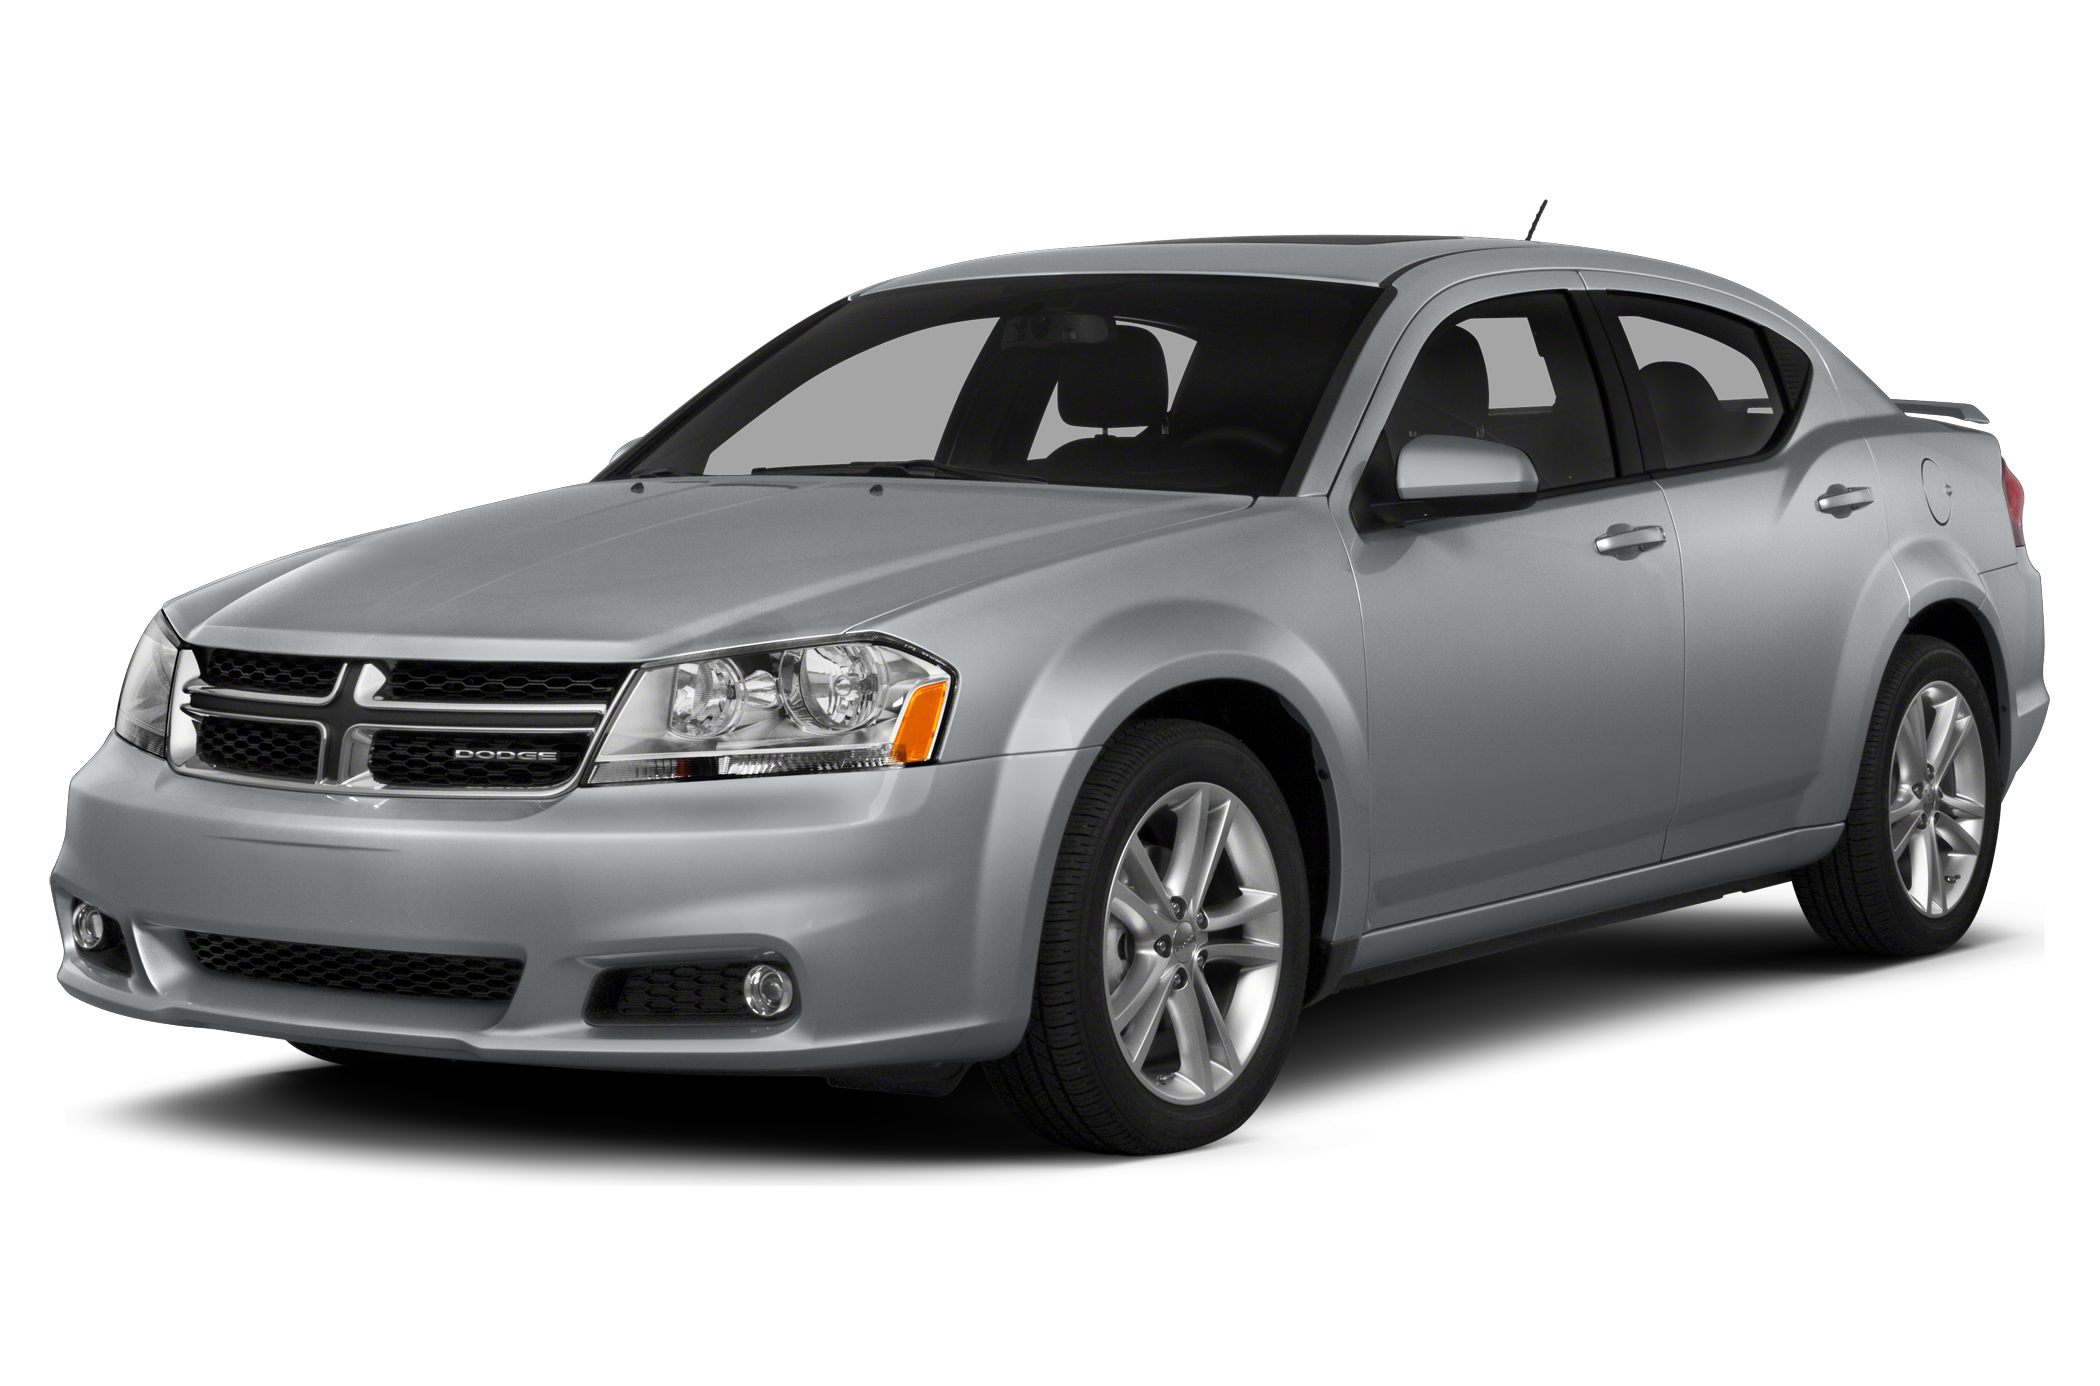 2014 Dodge Avenger SXT Sedan for sale in Pueblo for $15,995 with 37,323 miles